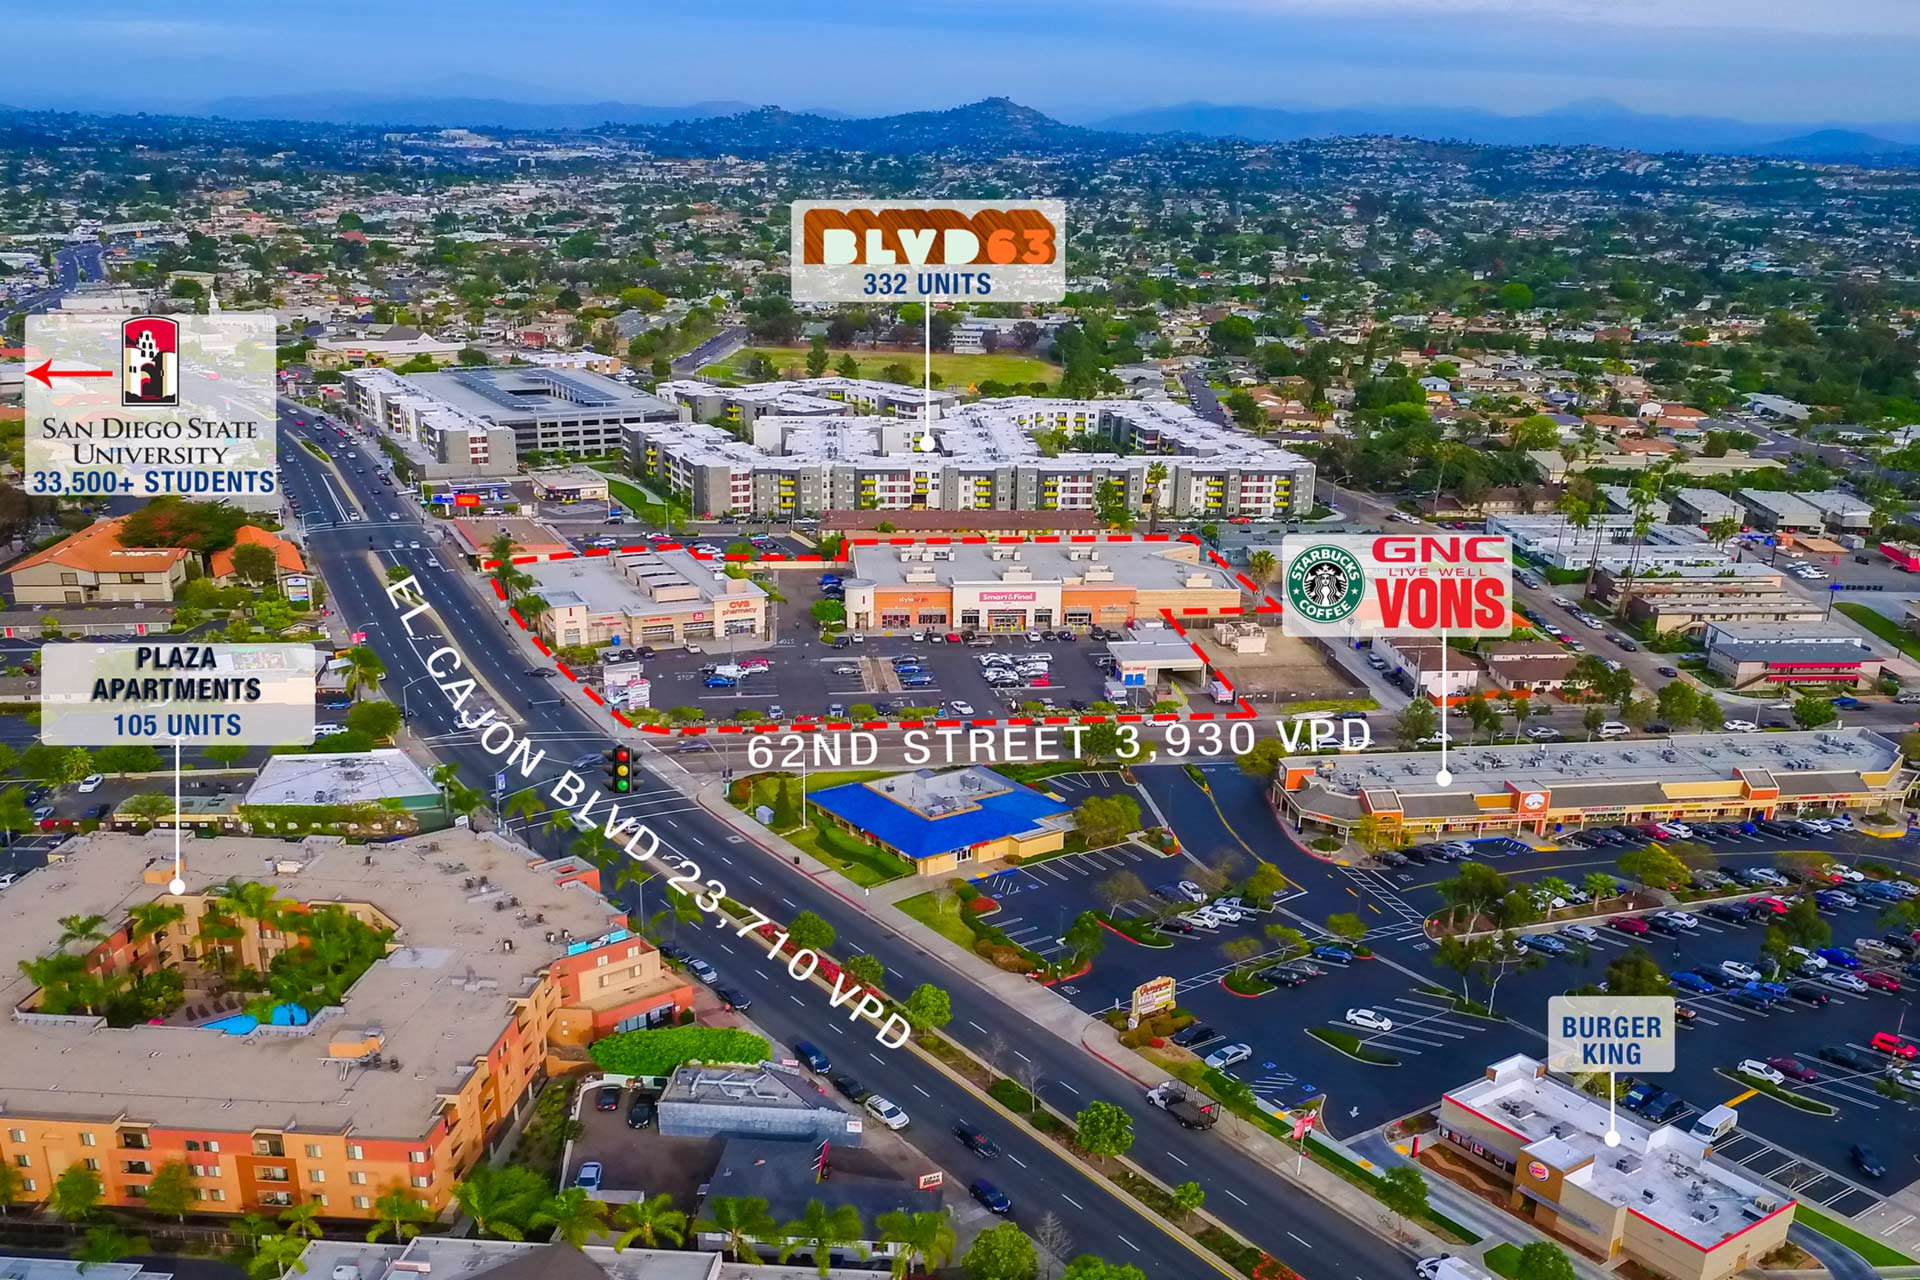 Campus Point Shopping Center, San Diego, Aerial View